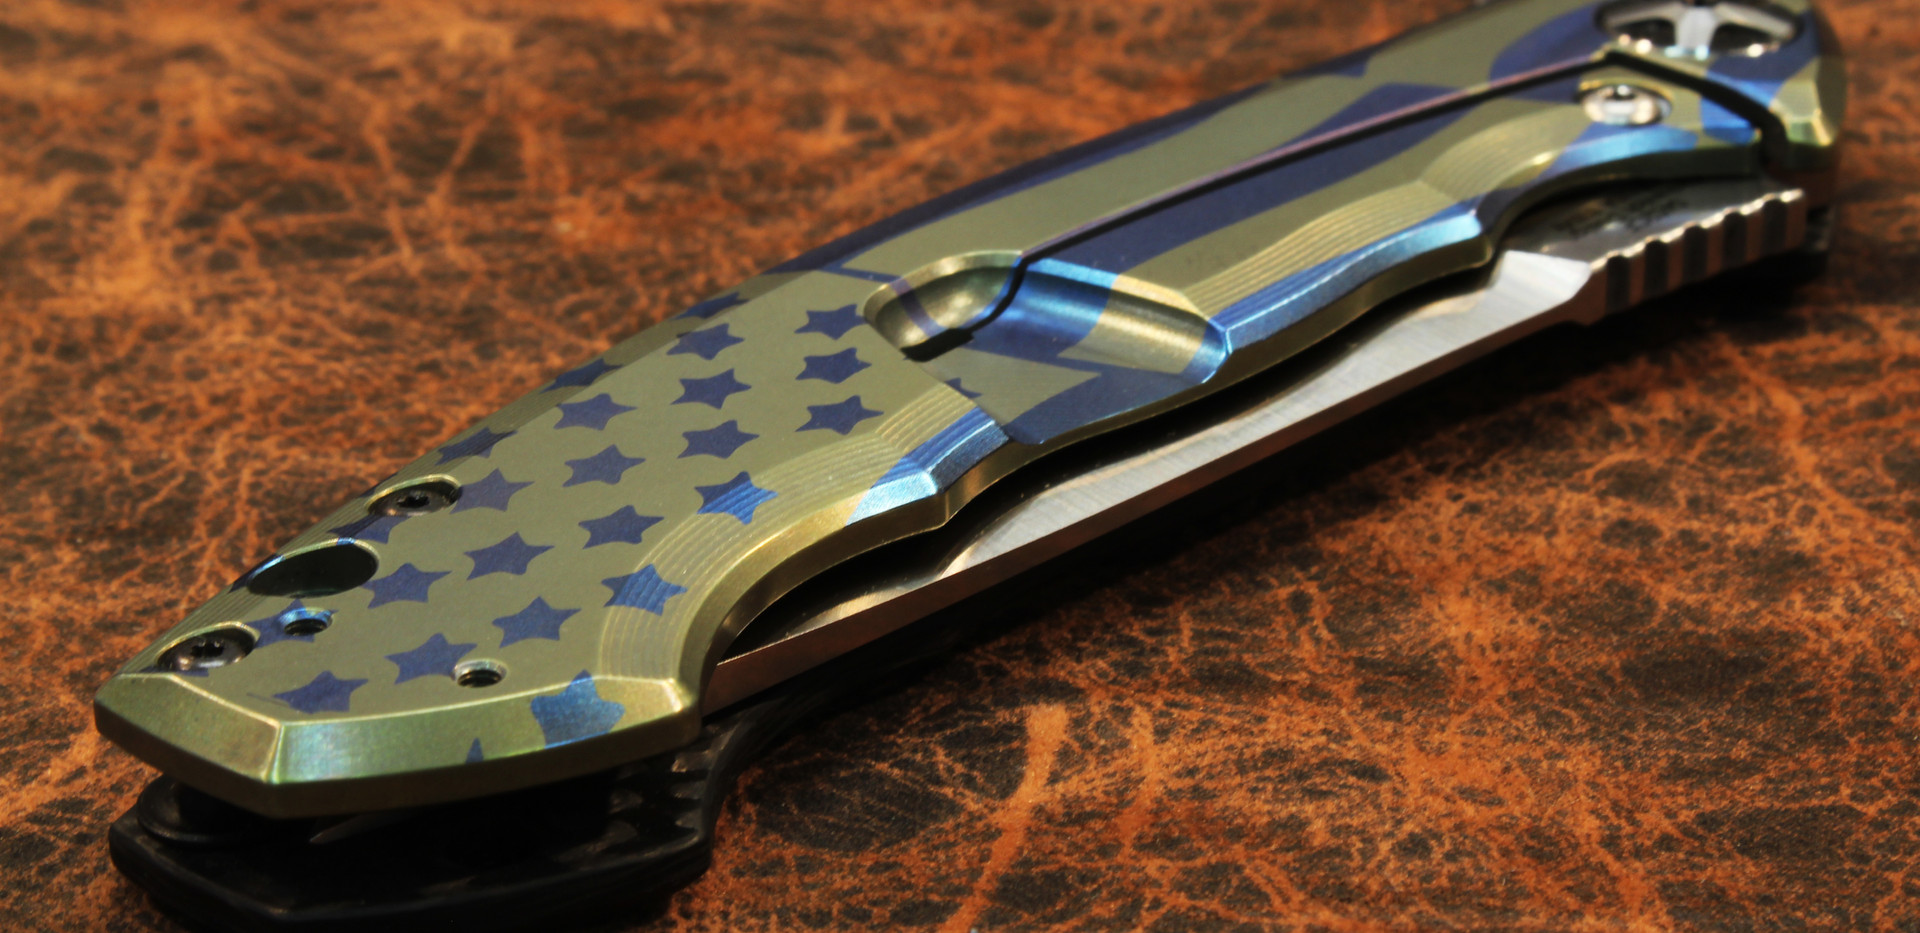 ZT Knife With Flag Pattern 3